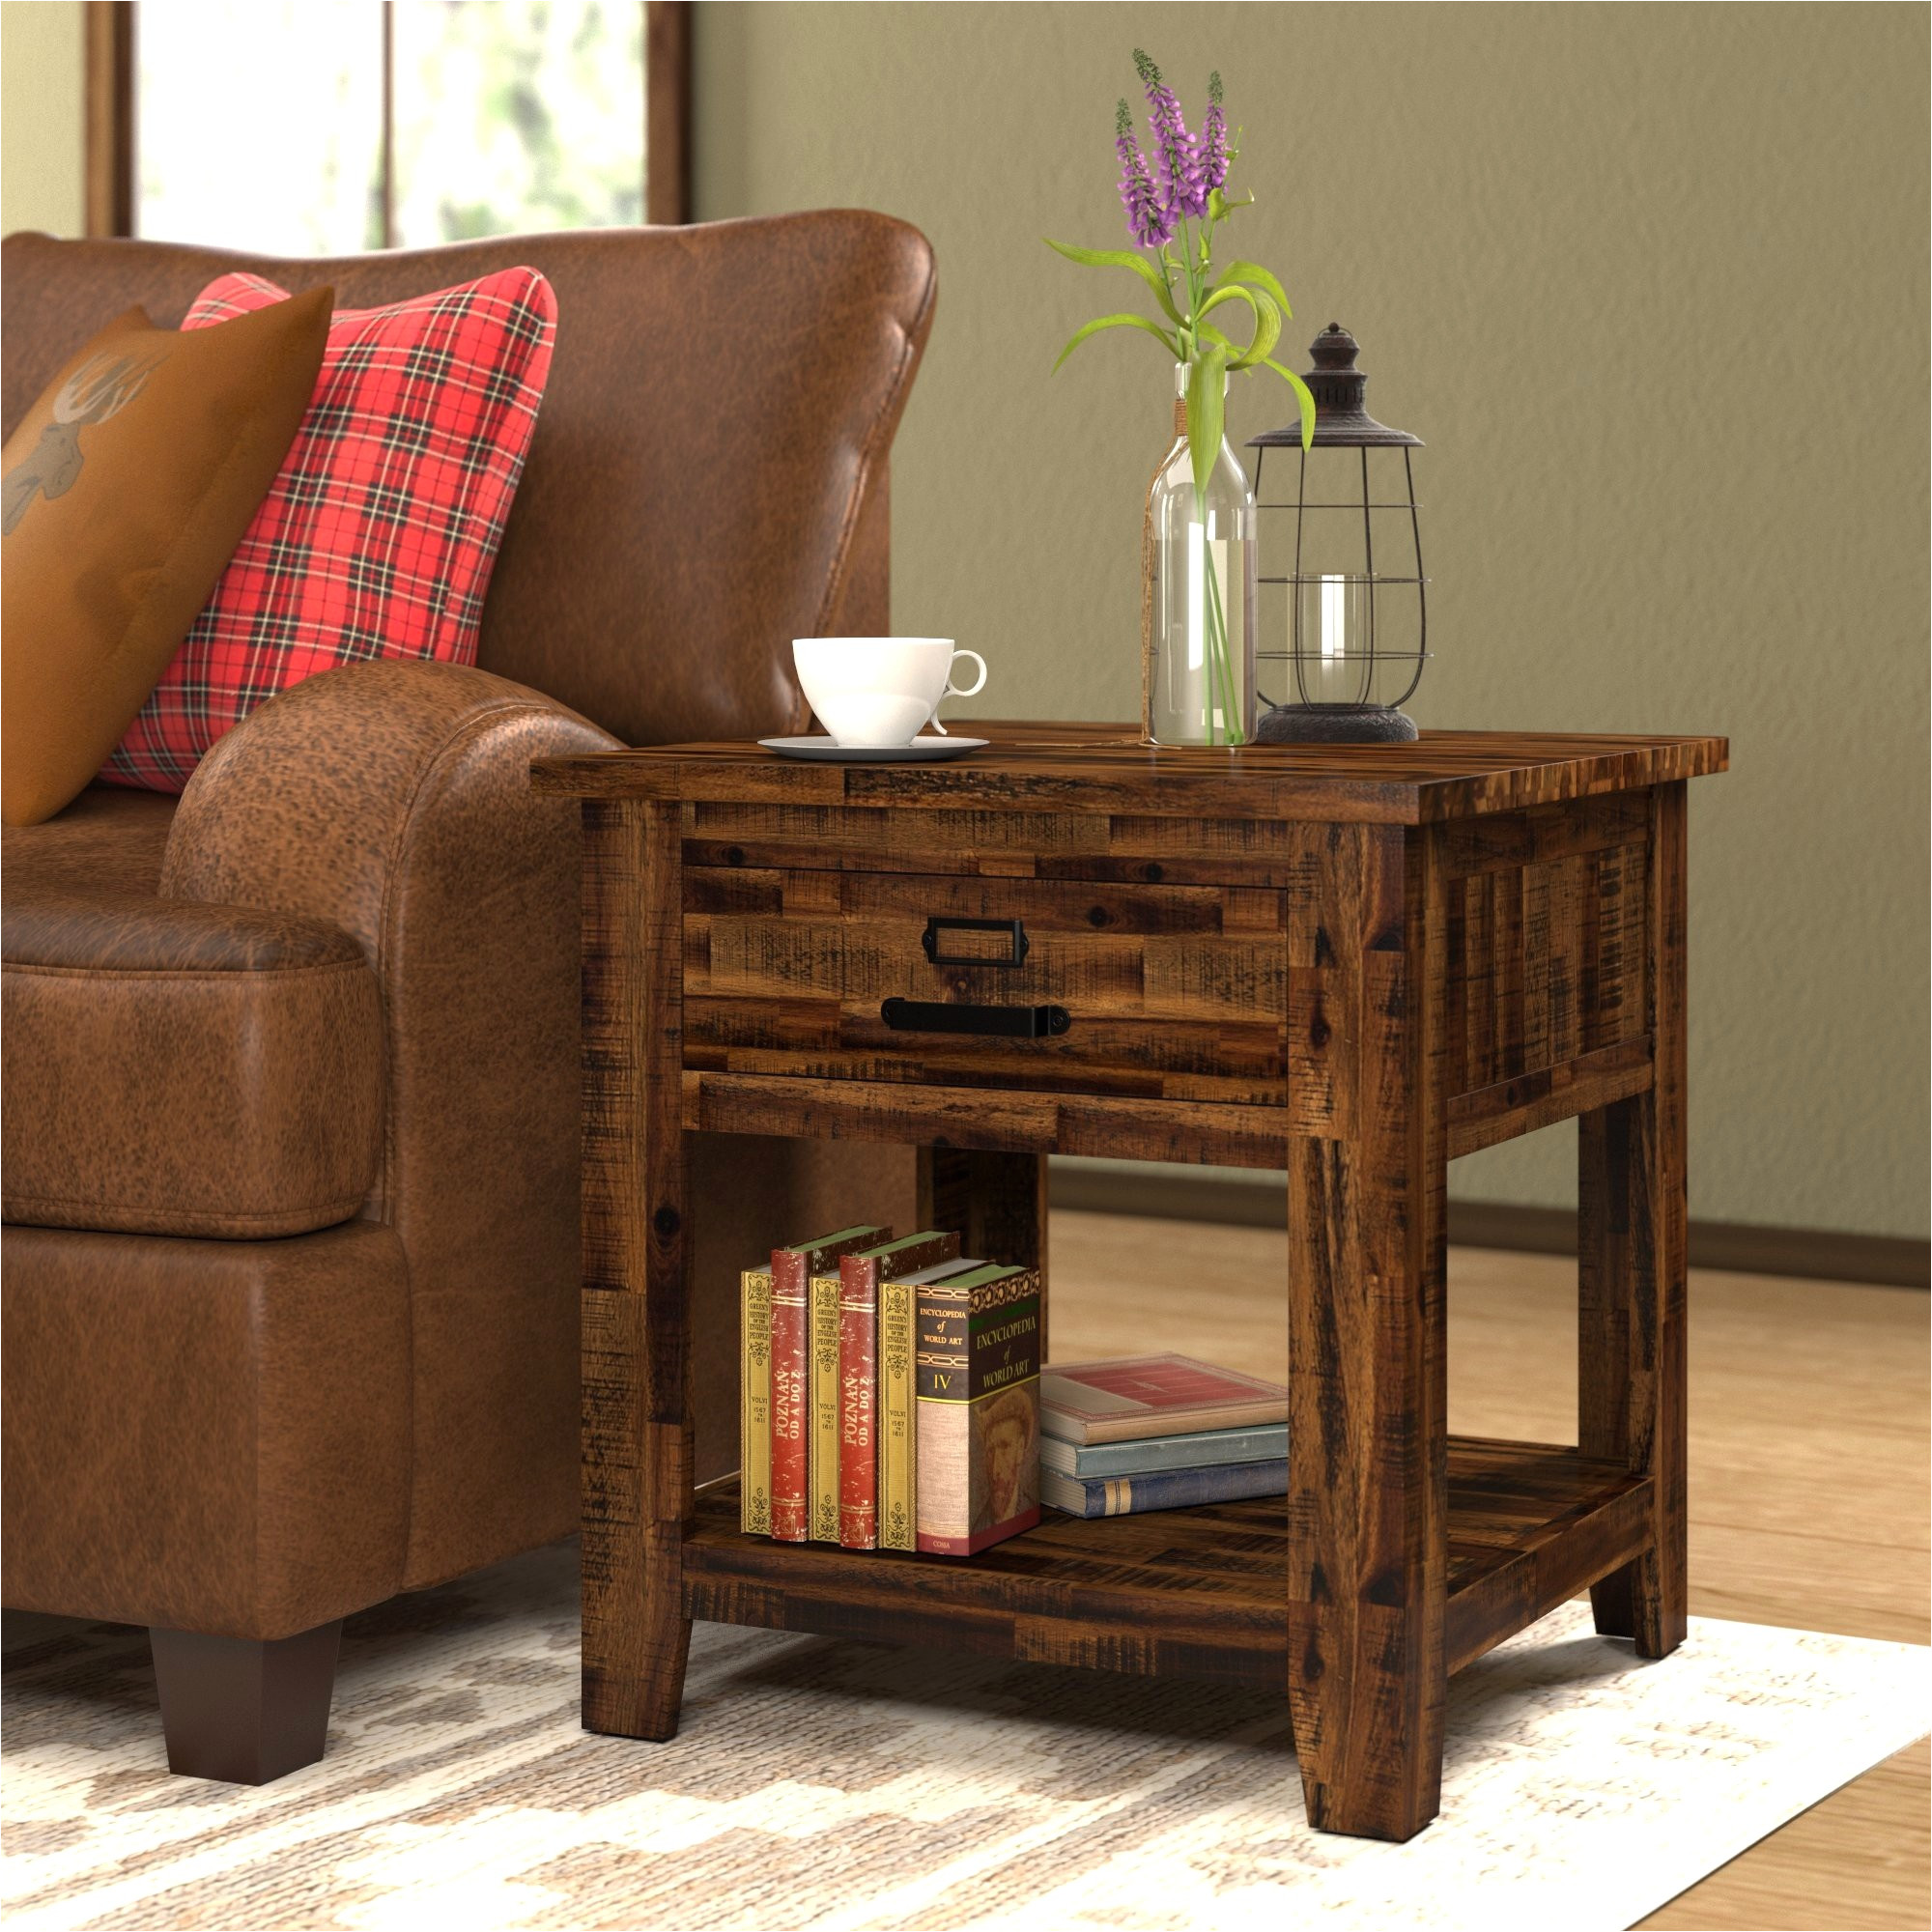 60 inch round coffee table collection 60 inch sofa table best 20 fresh round storage